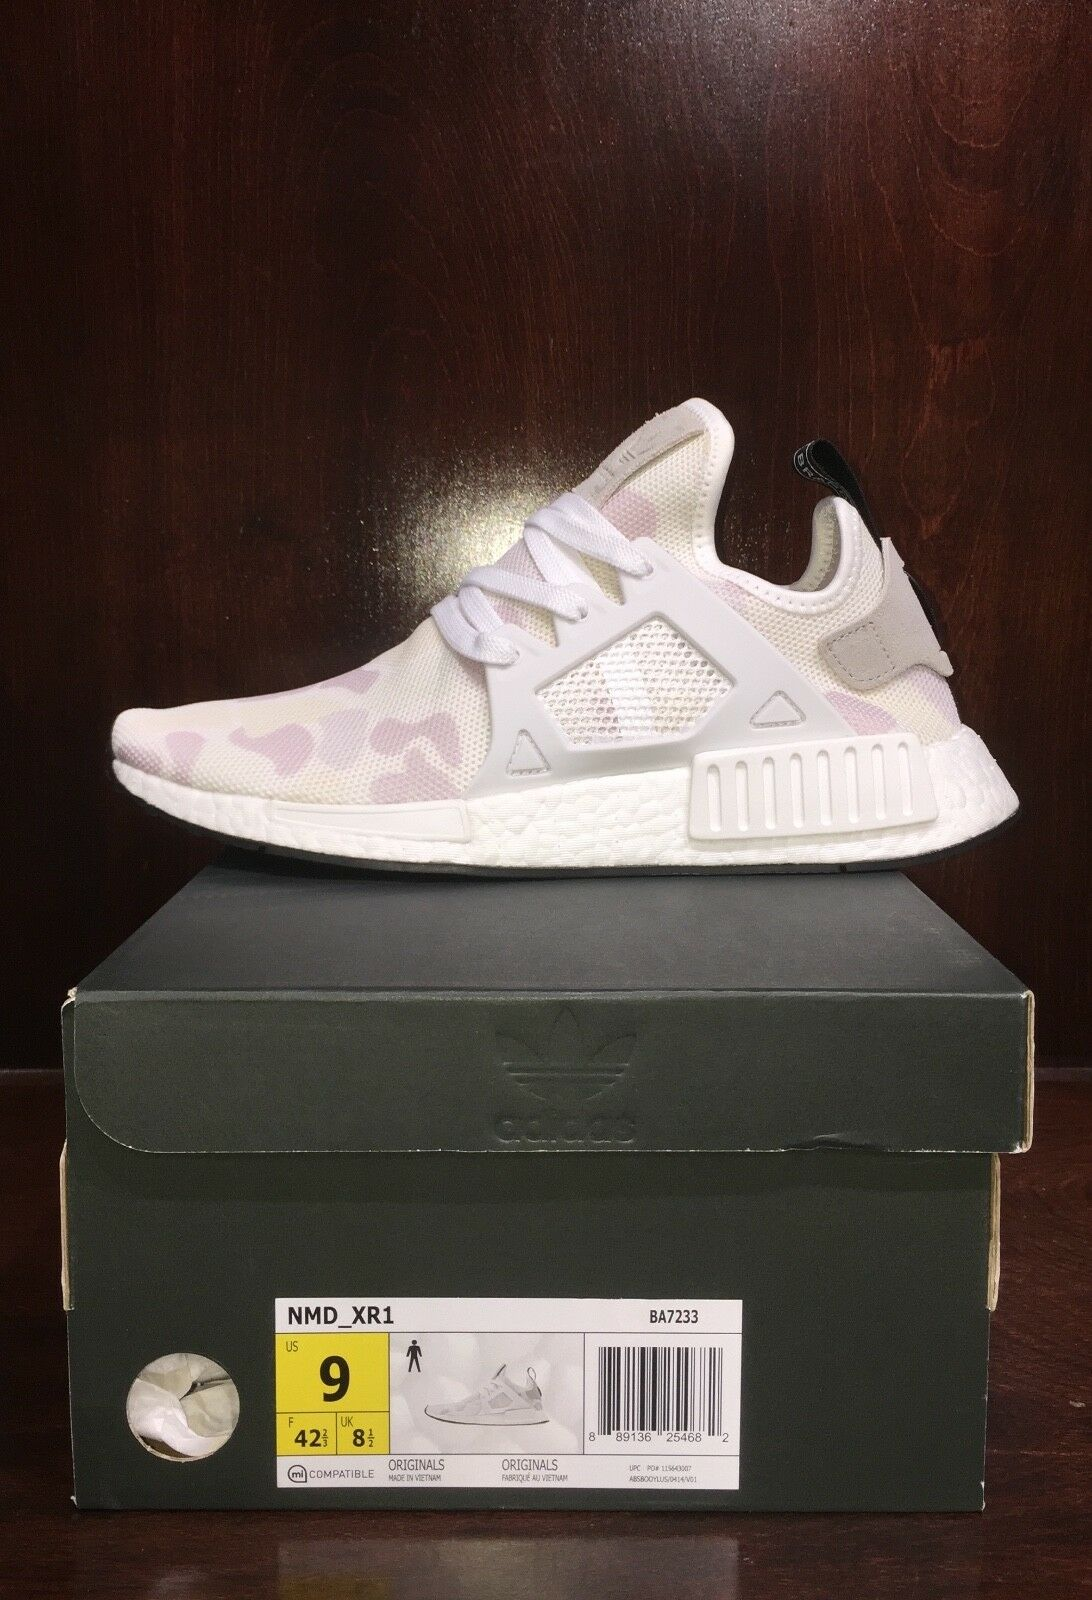 ab62ace426bbd 代購æ 洲公 貨Adidas Originals NMD XR1 S32218 é